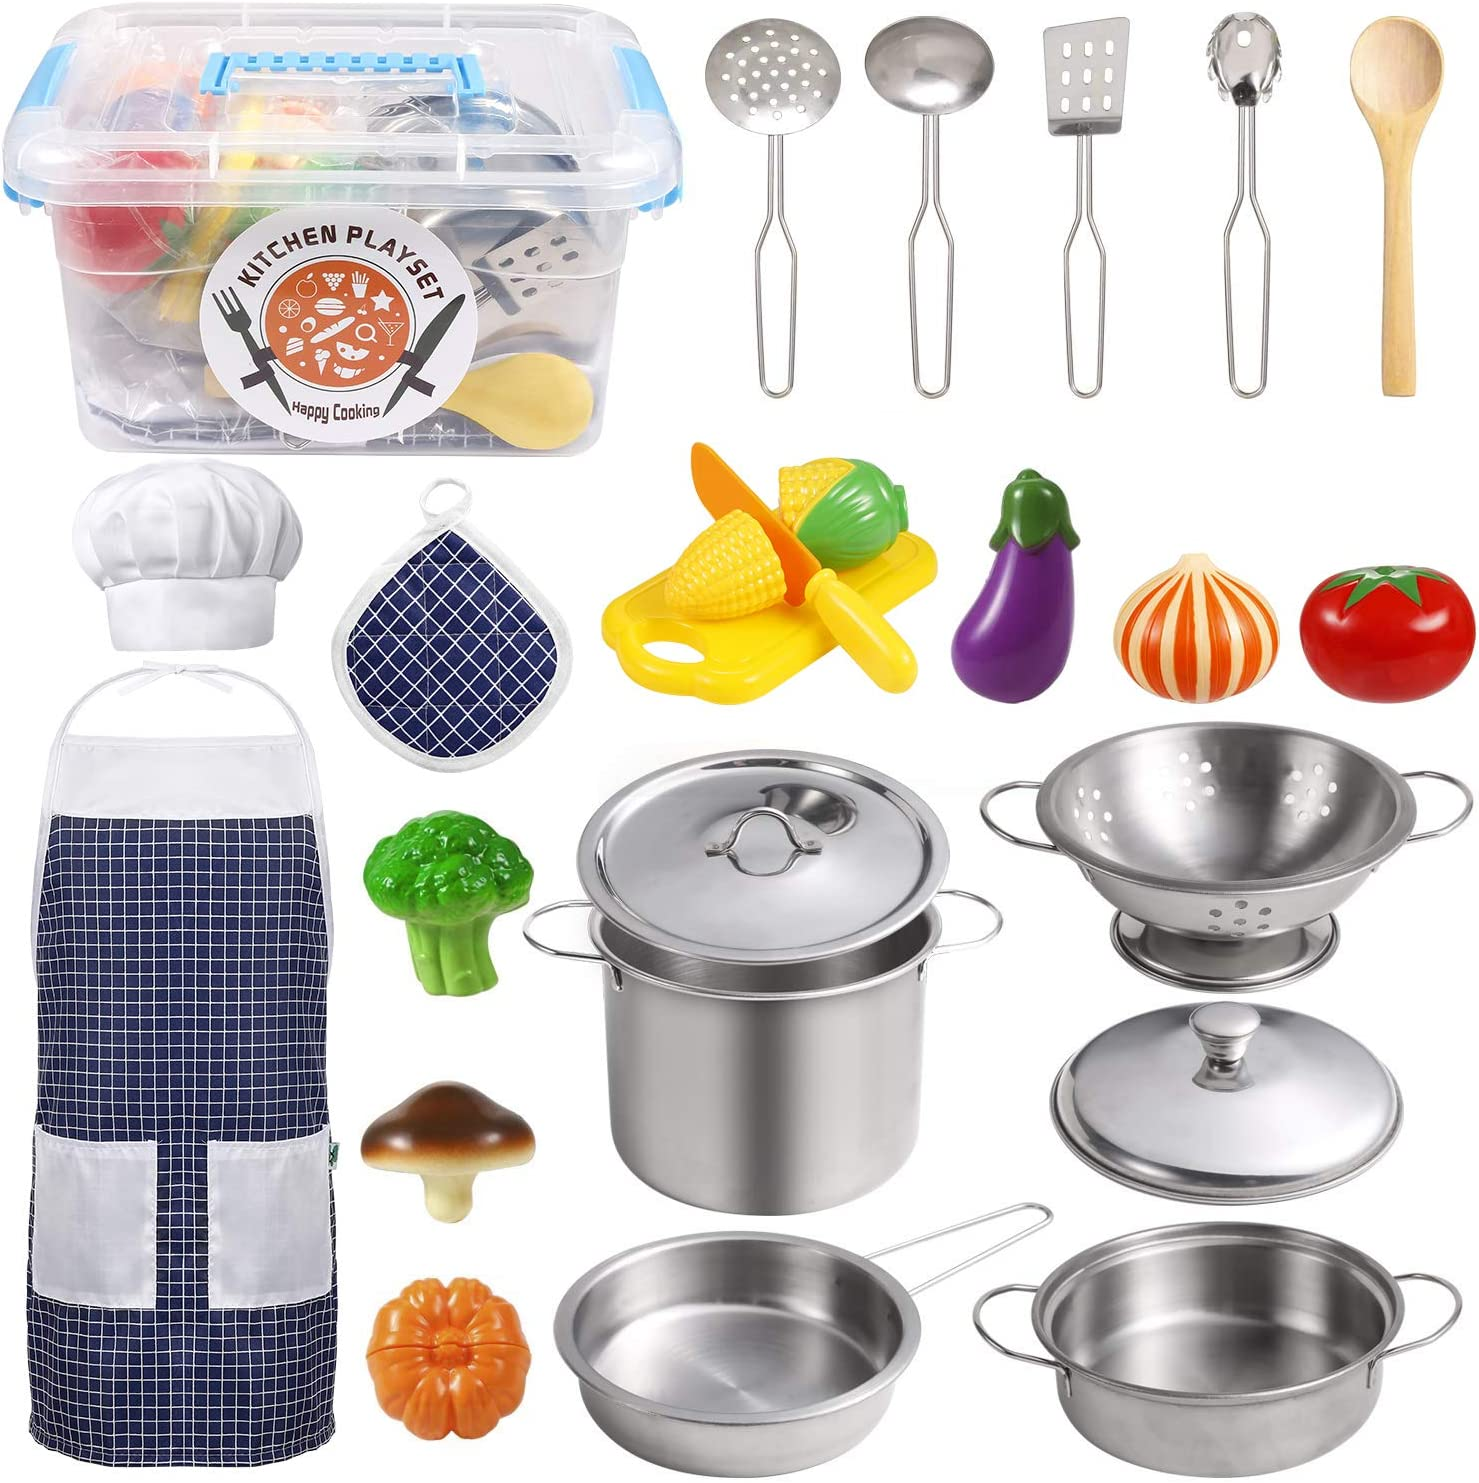 Amazon Com Kodatek Kids Kitchen Pretend Play Toys Kitchen Set With Stainless Steel Cooking Utensils Cookware Pots And Pans Set Healthy Vegetables Knife Apron Little Chef Boys Girls 24 Pieces Toys Games